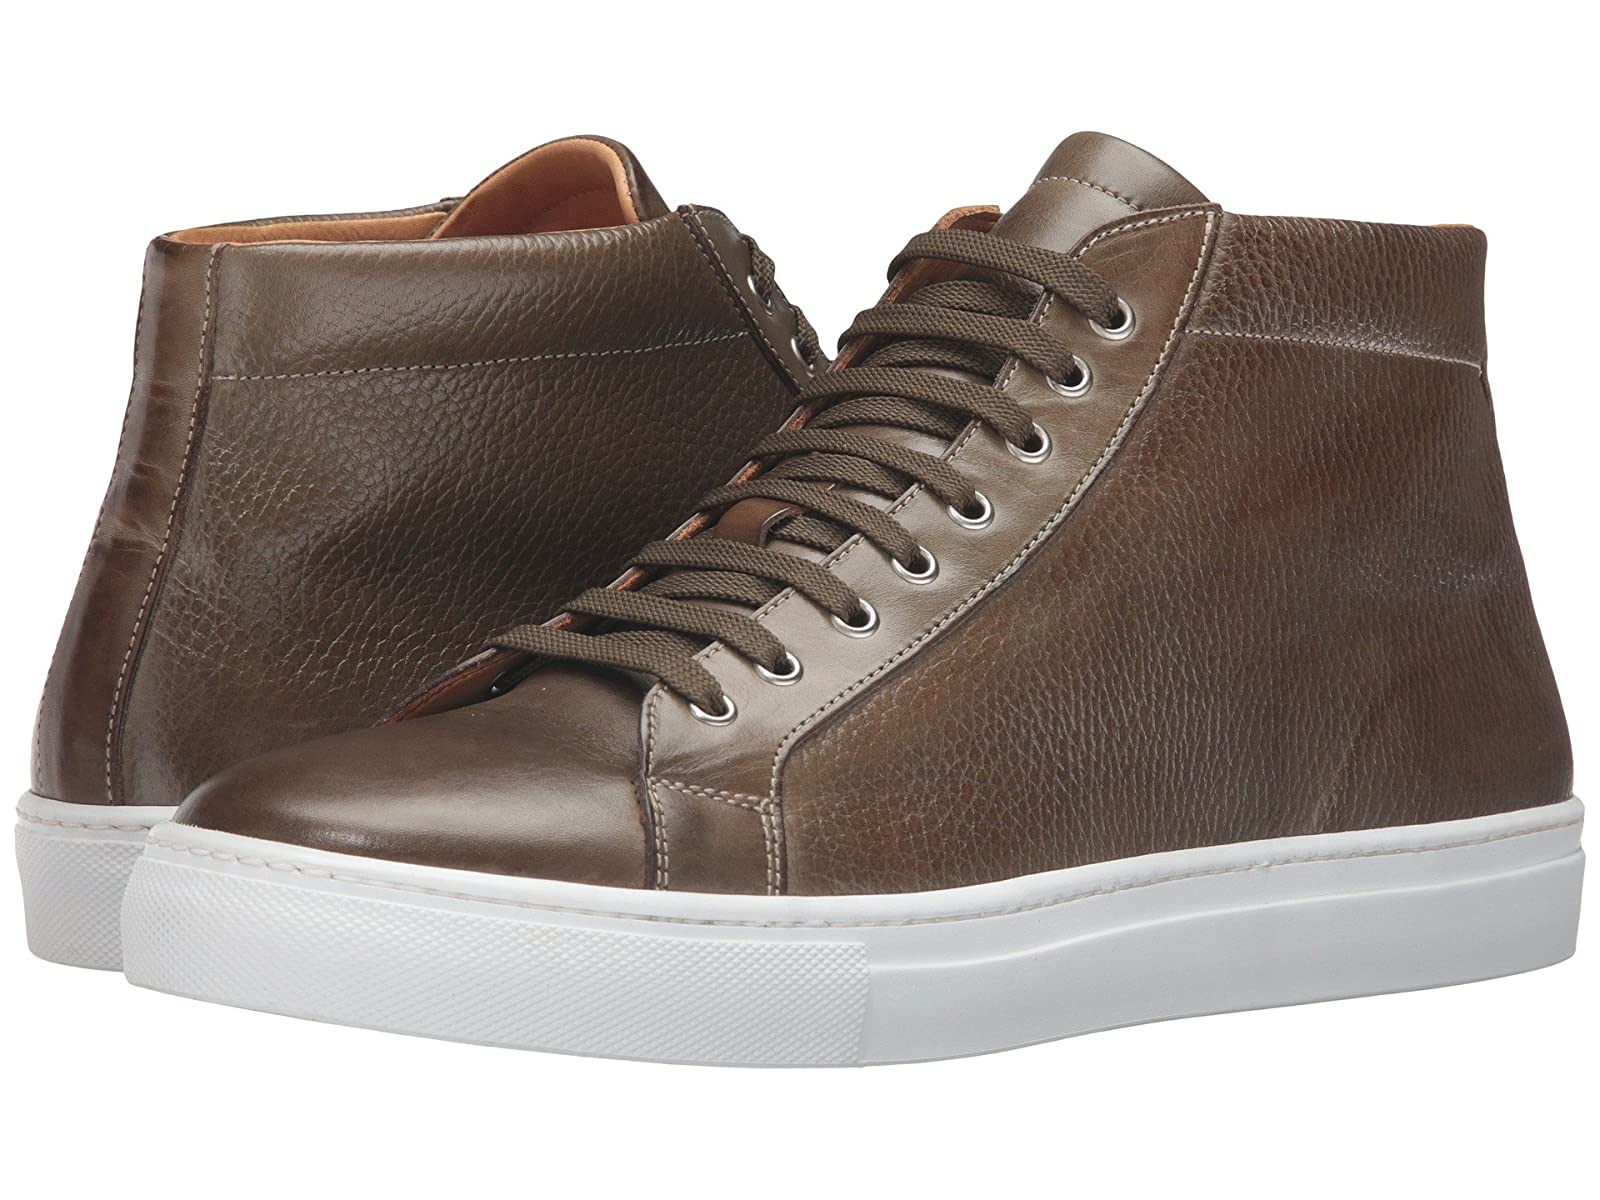 Gold & Gravy Street MidCheap and distinctive eye-catching shoes